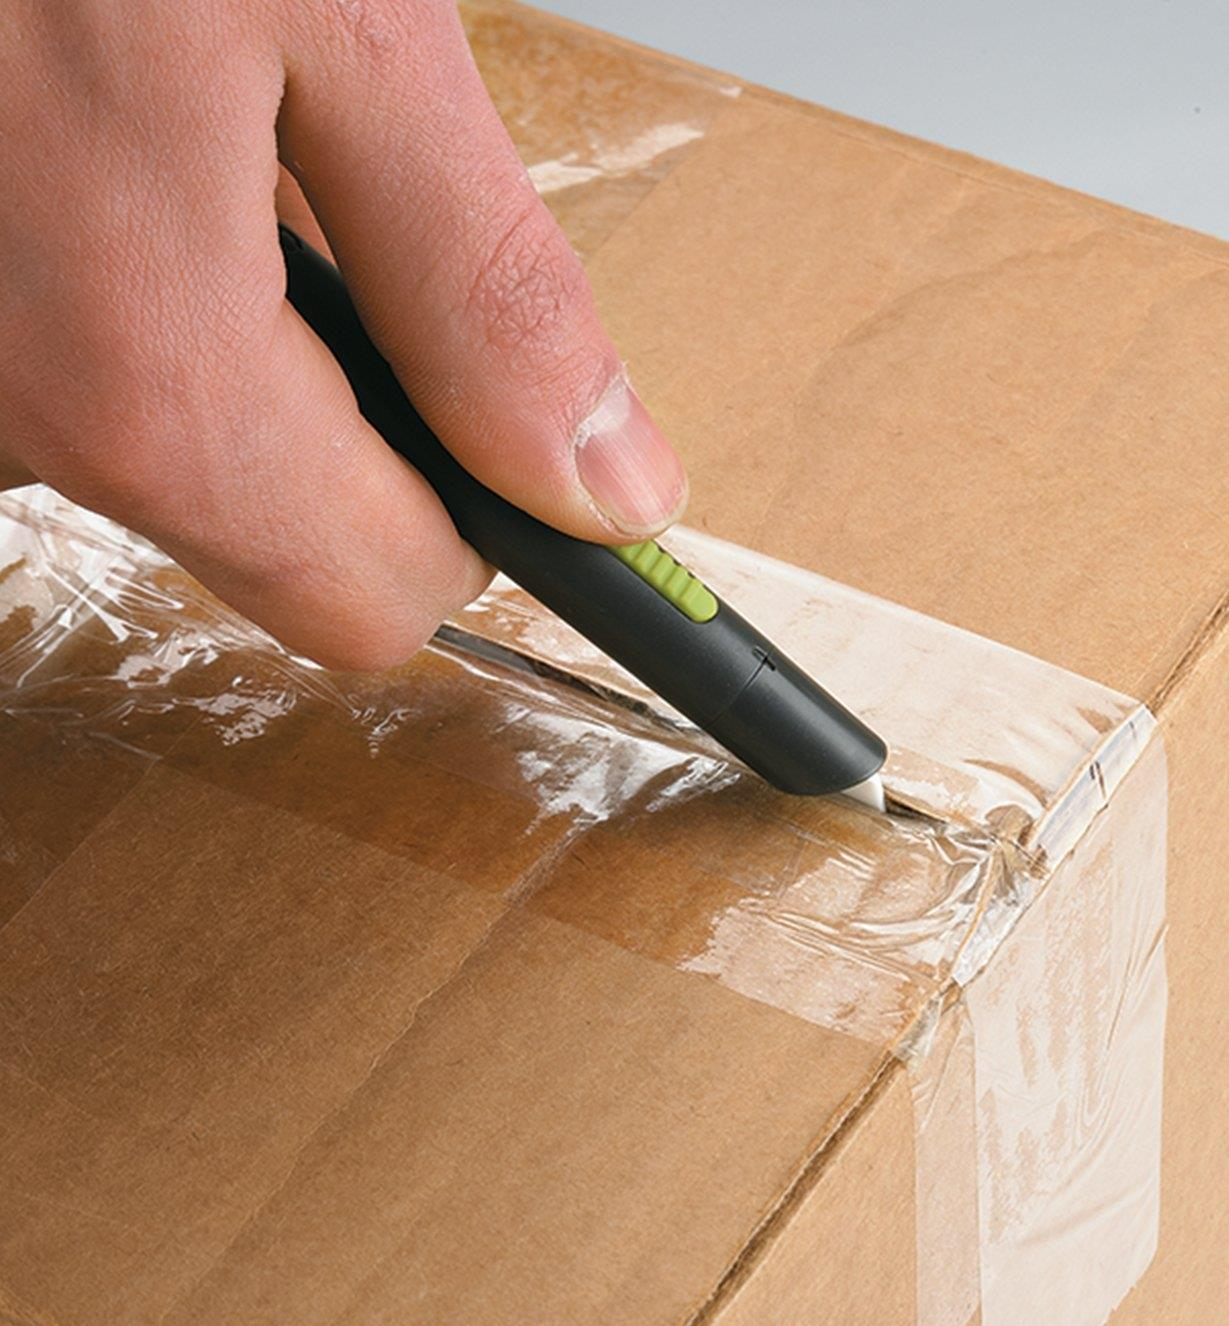 Desk Utility Cutter being used to slice through packing tape on a cardboard box